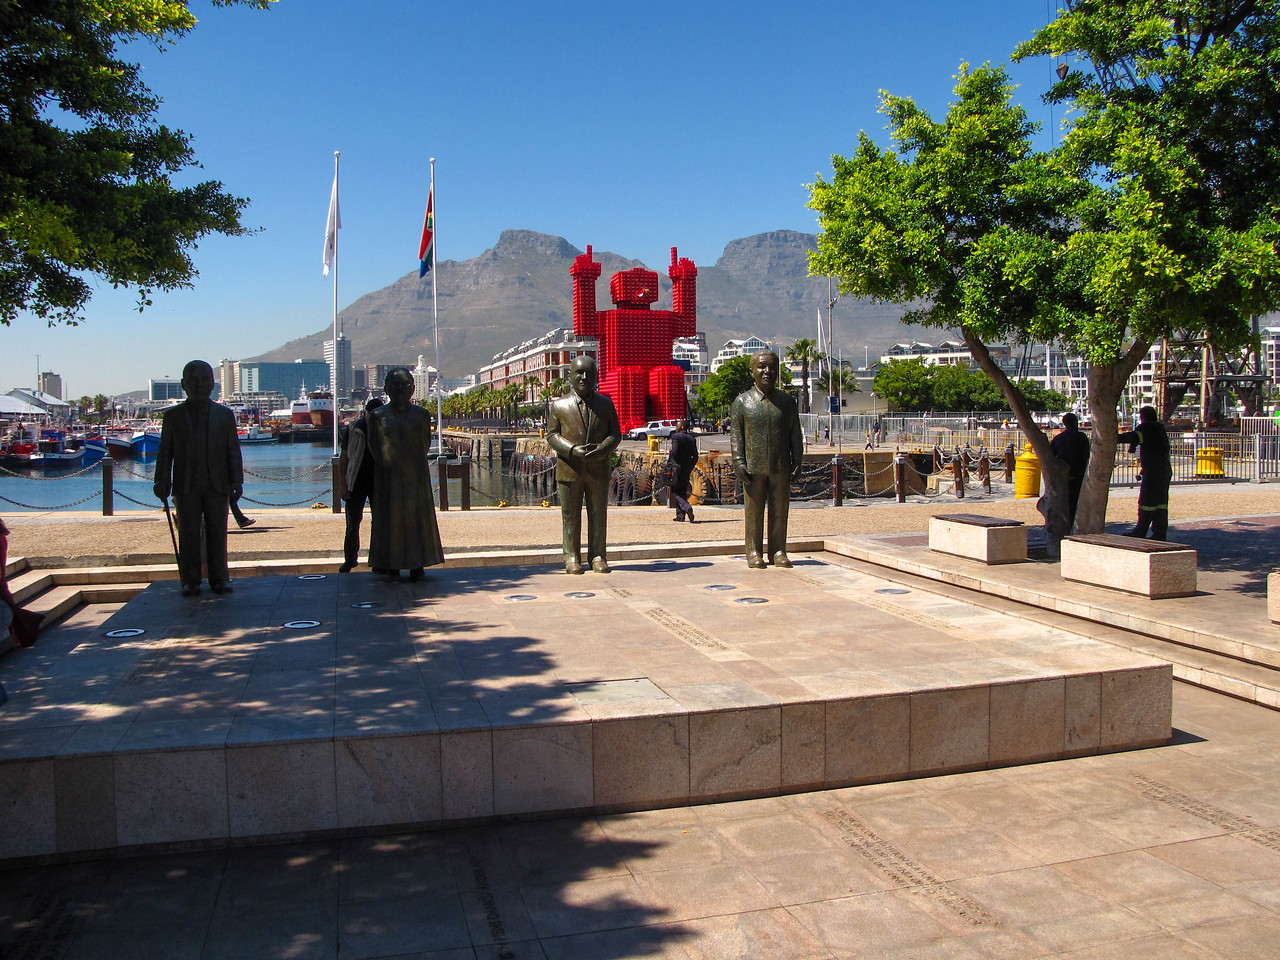 Nobel Peace Prize Monument, V&A Waterfront